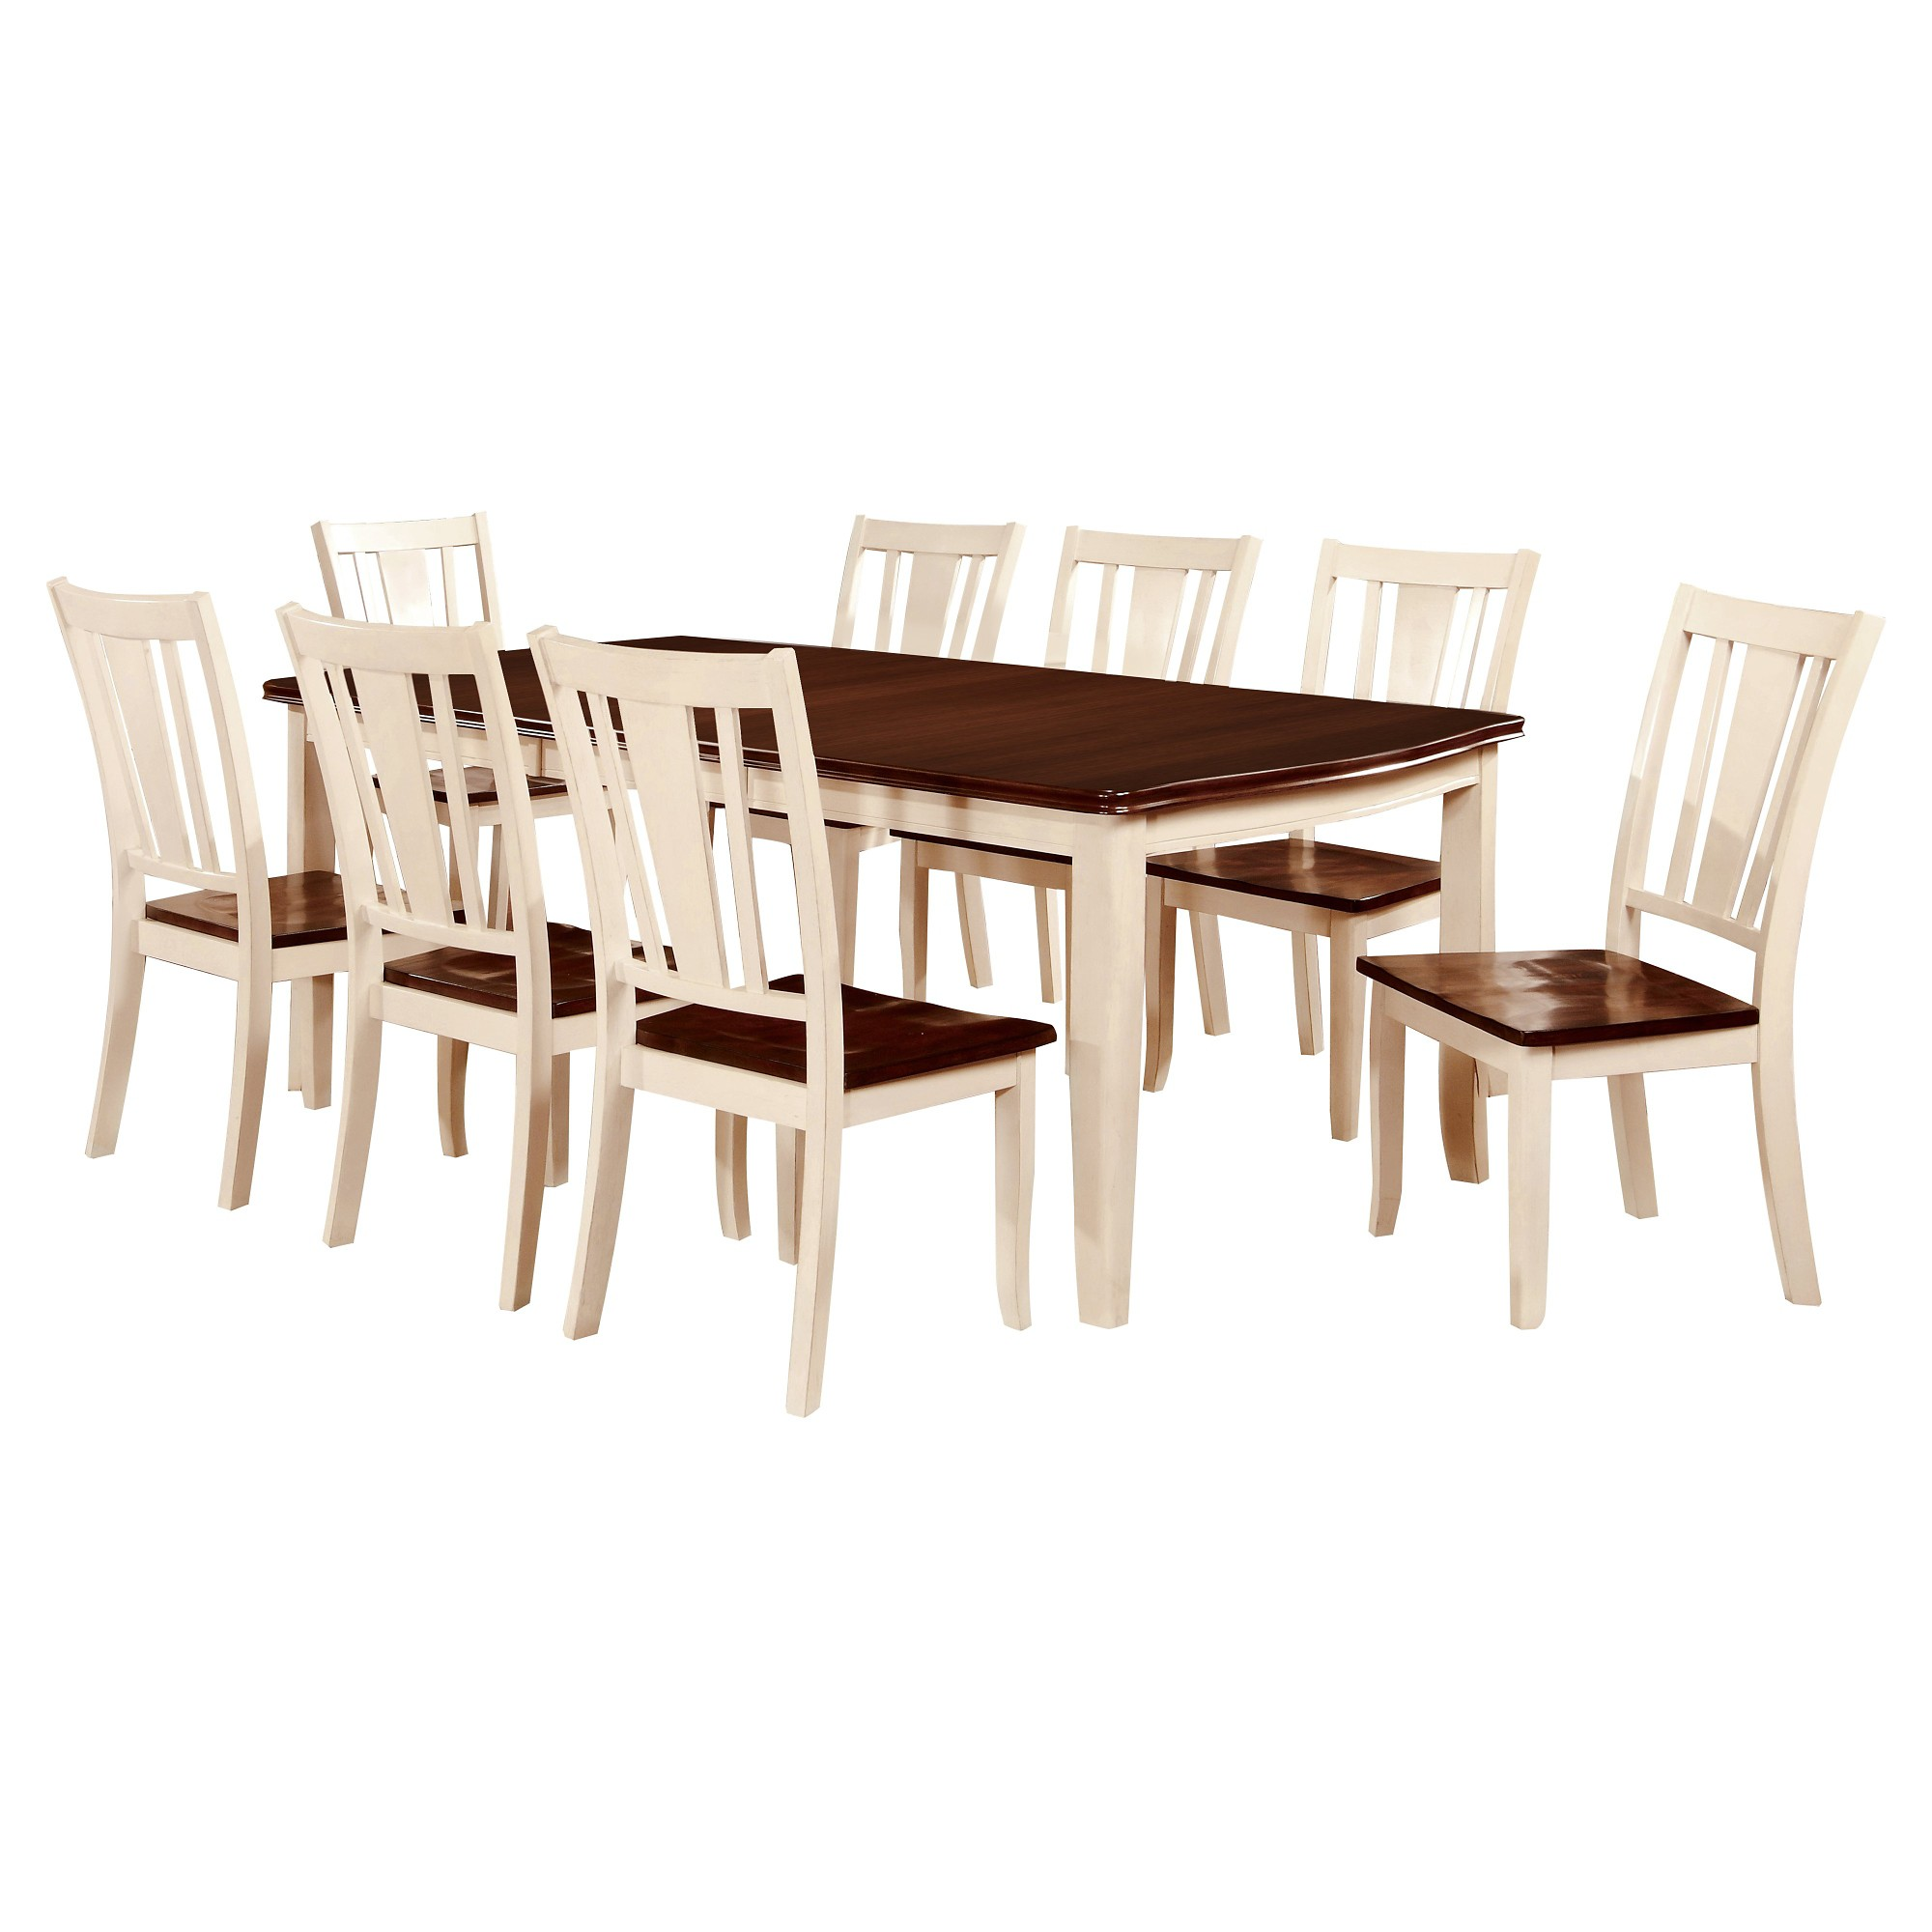 Sun u pine pc curved edge dining table set woodcherry and vintage